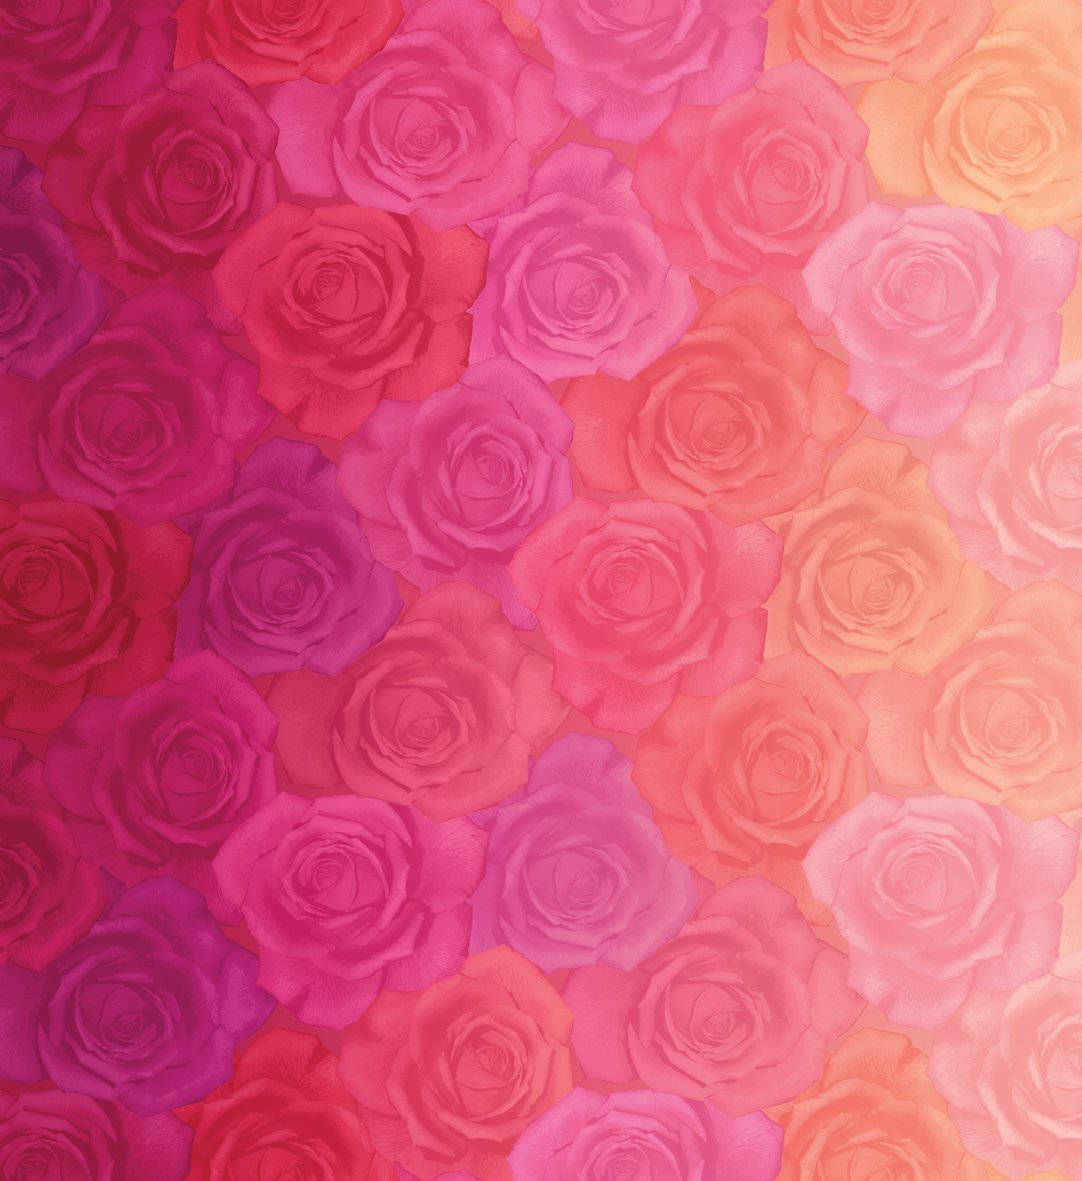 Gradients 33364-11D Roses Pink